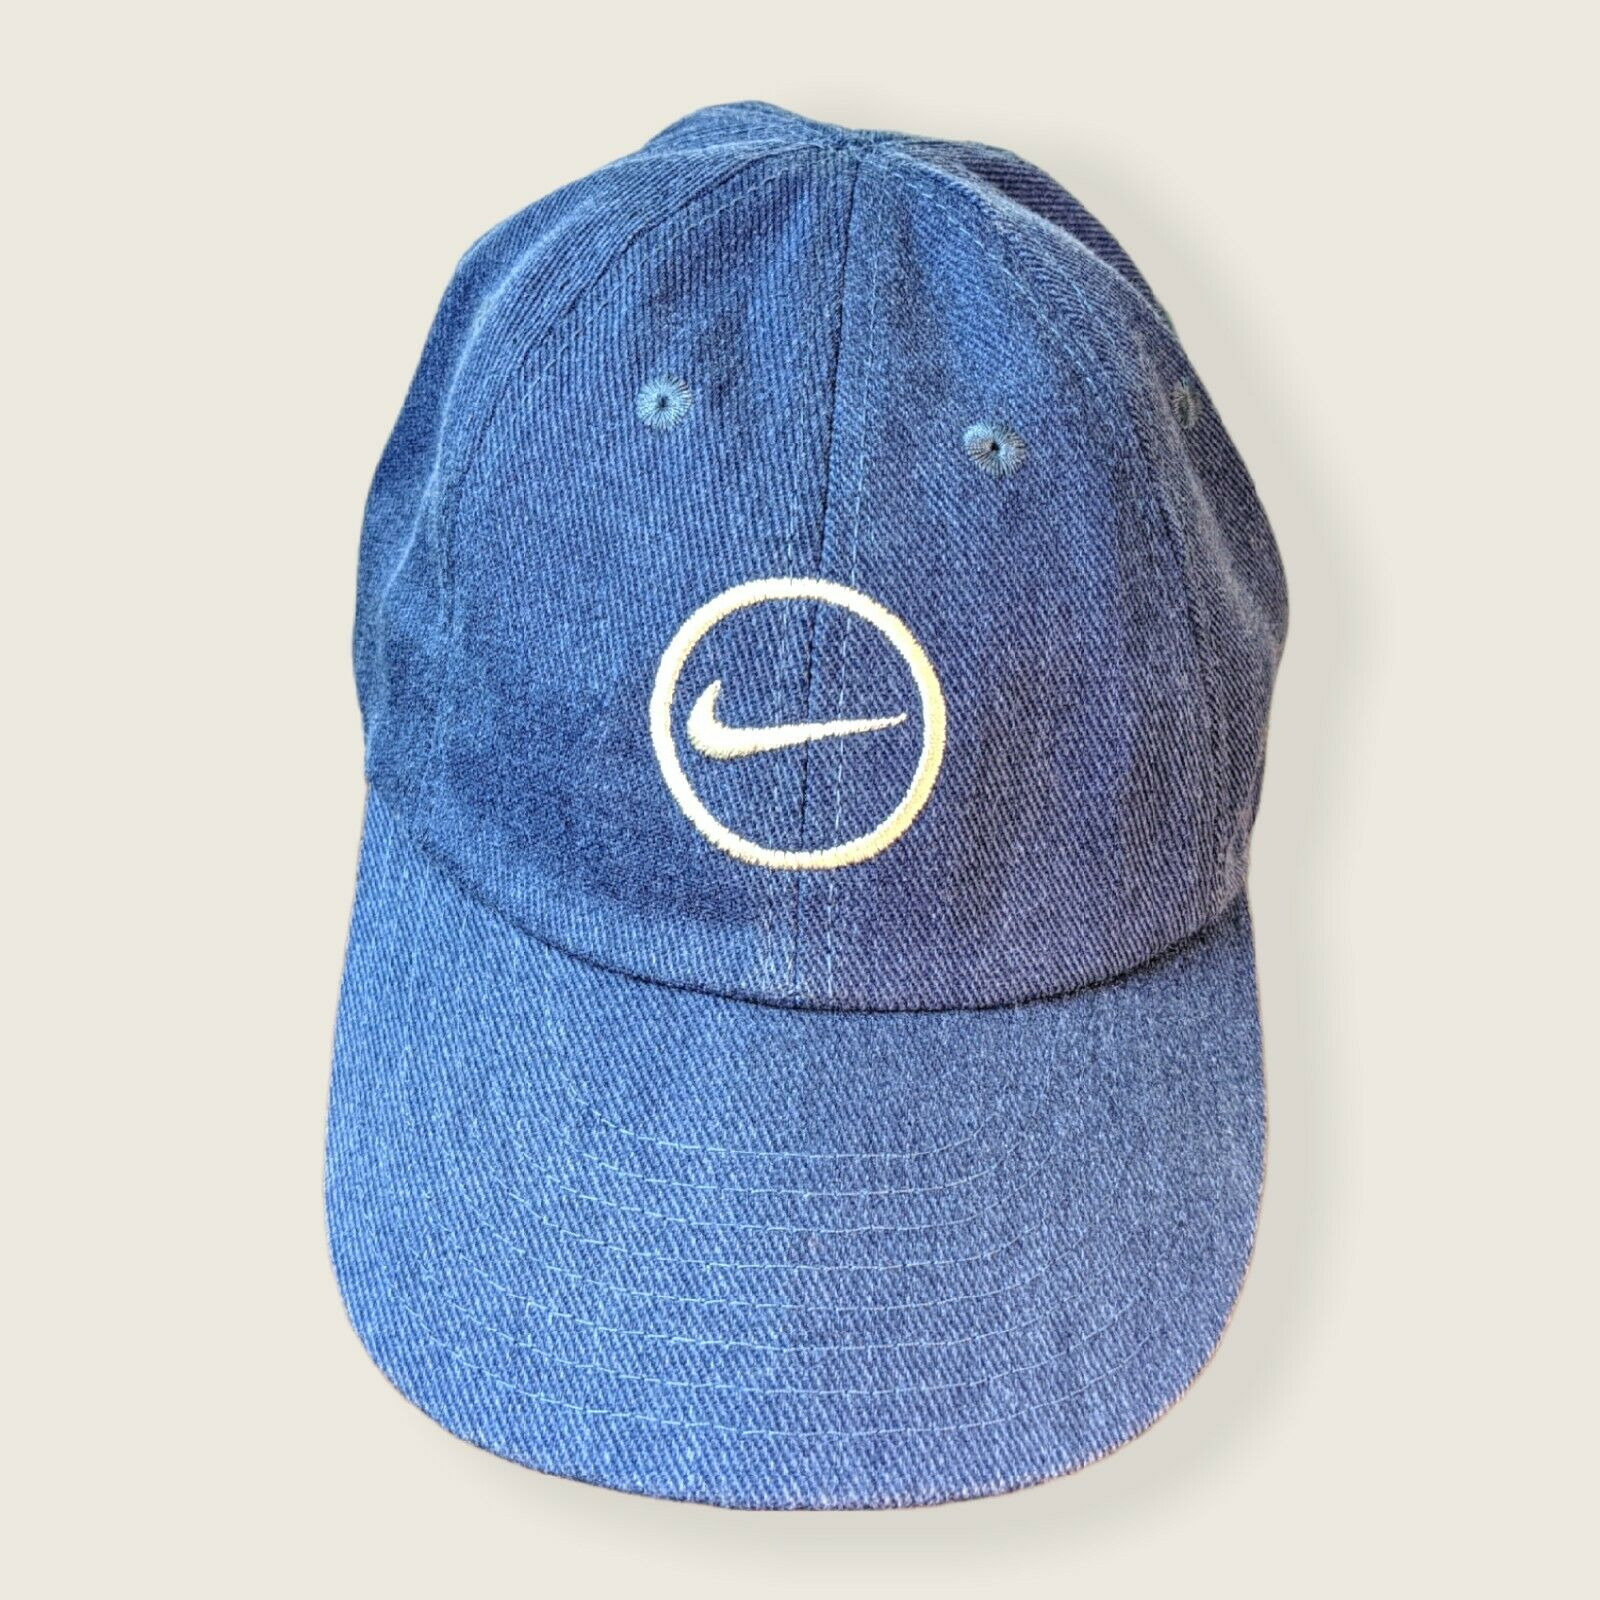 VTG Nike Embroidered Swoosh 80s Blue Canvas White Tag Hat Cap Free Shipping